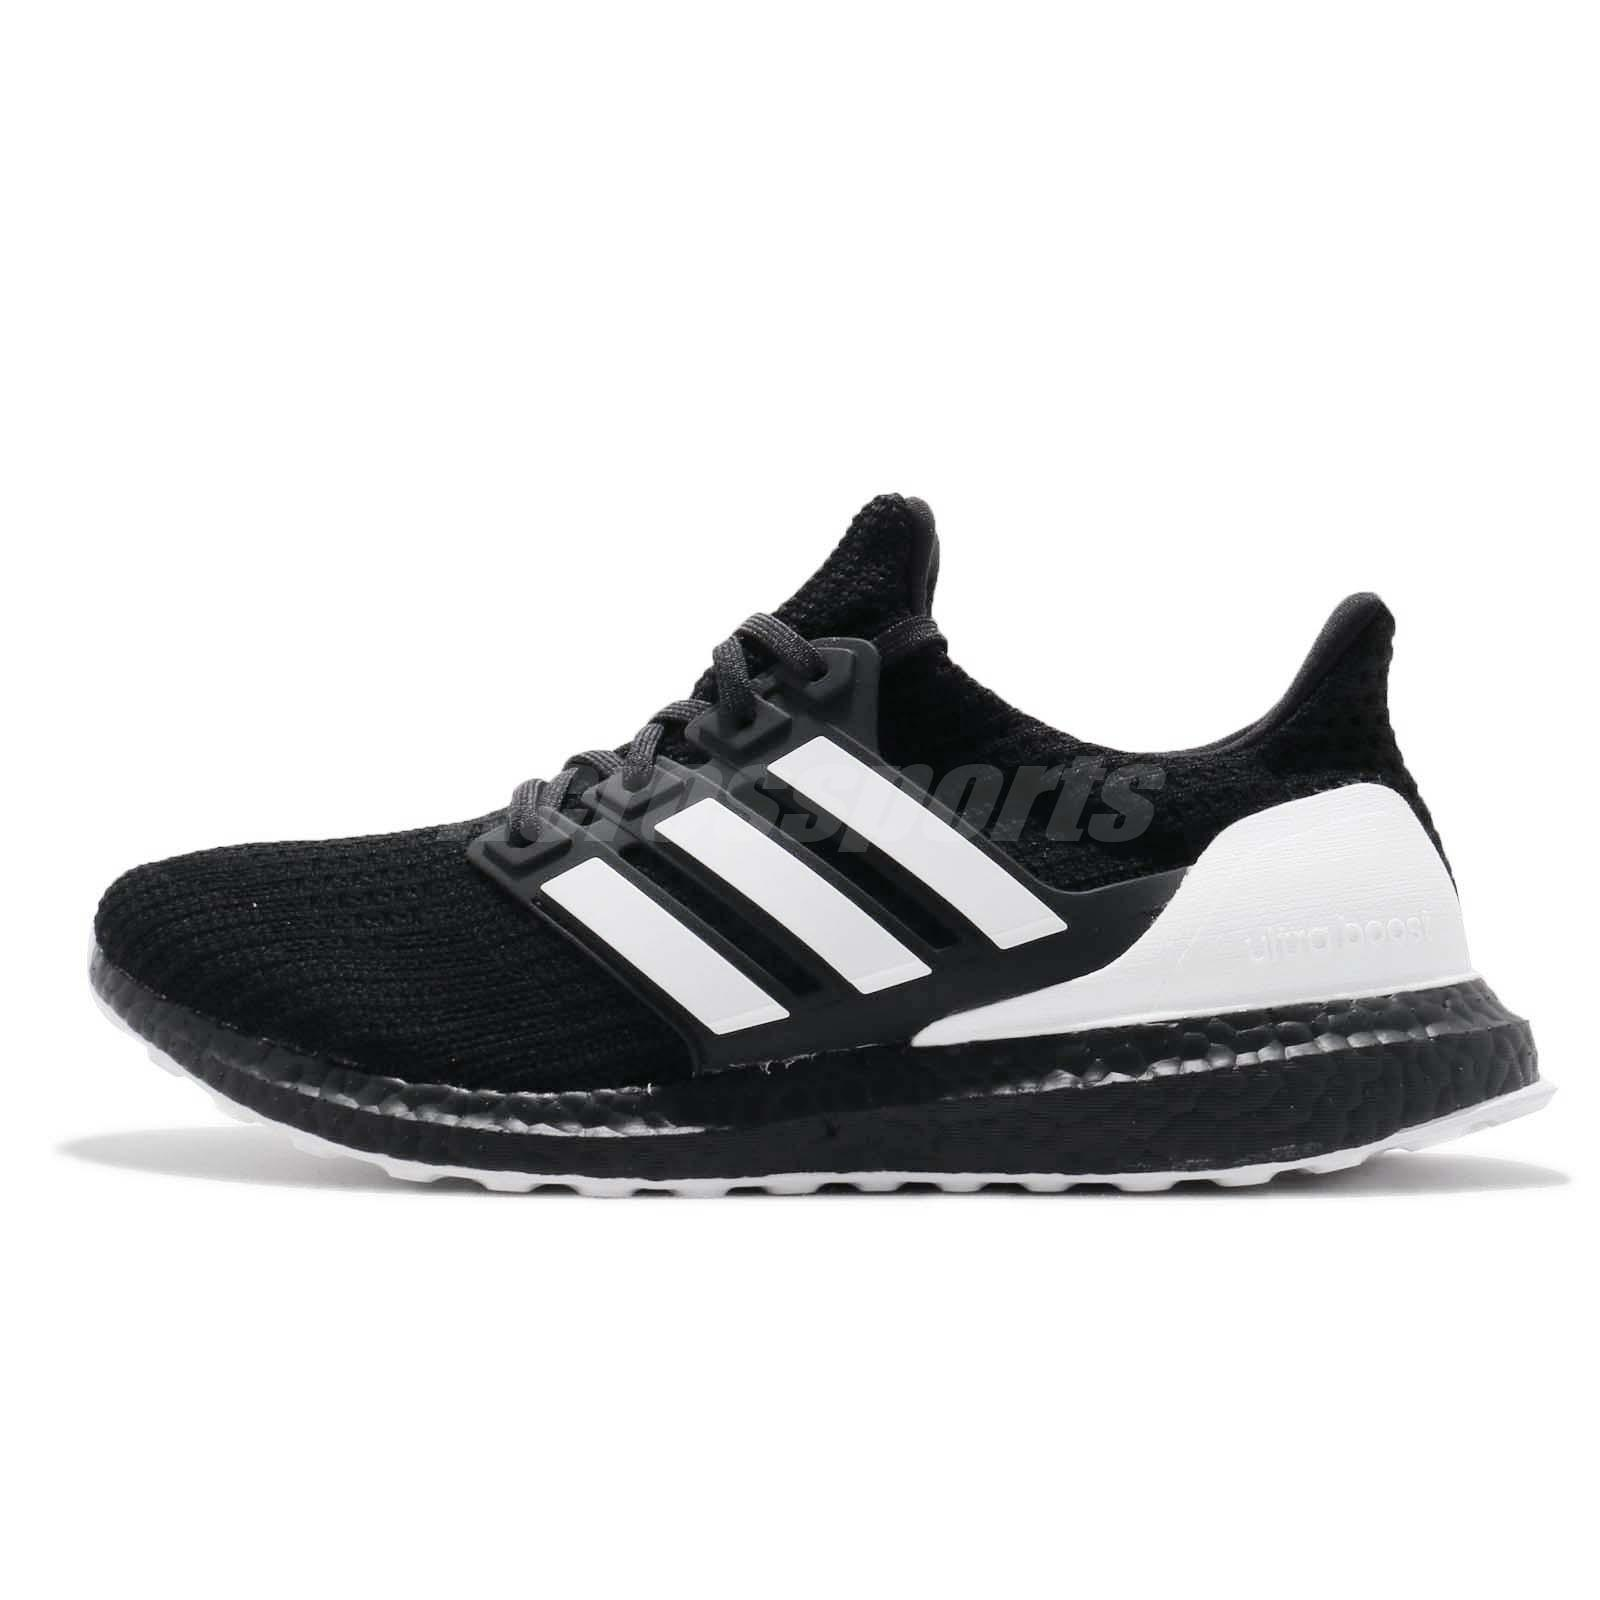 official photos 6e0e8 47755 Details about adidas UltraBoost 4.0 Orca Black White Carbon Men Running  Shoes Sneakers G28965